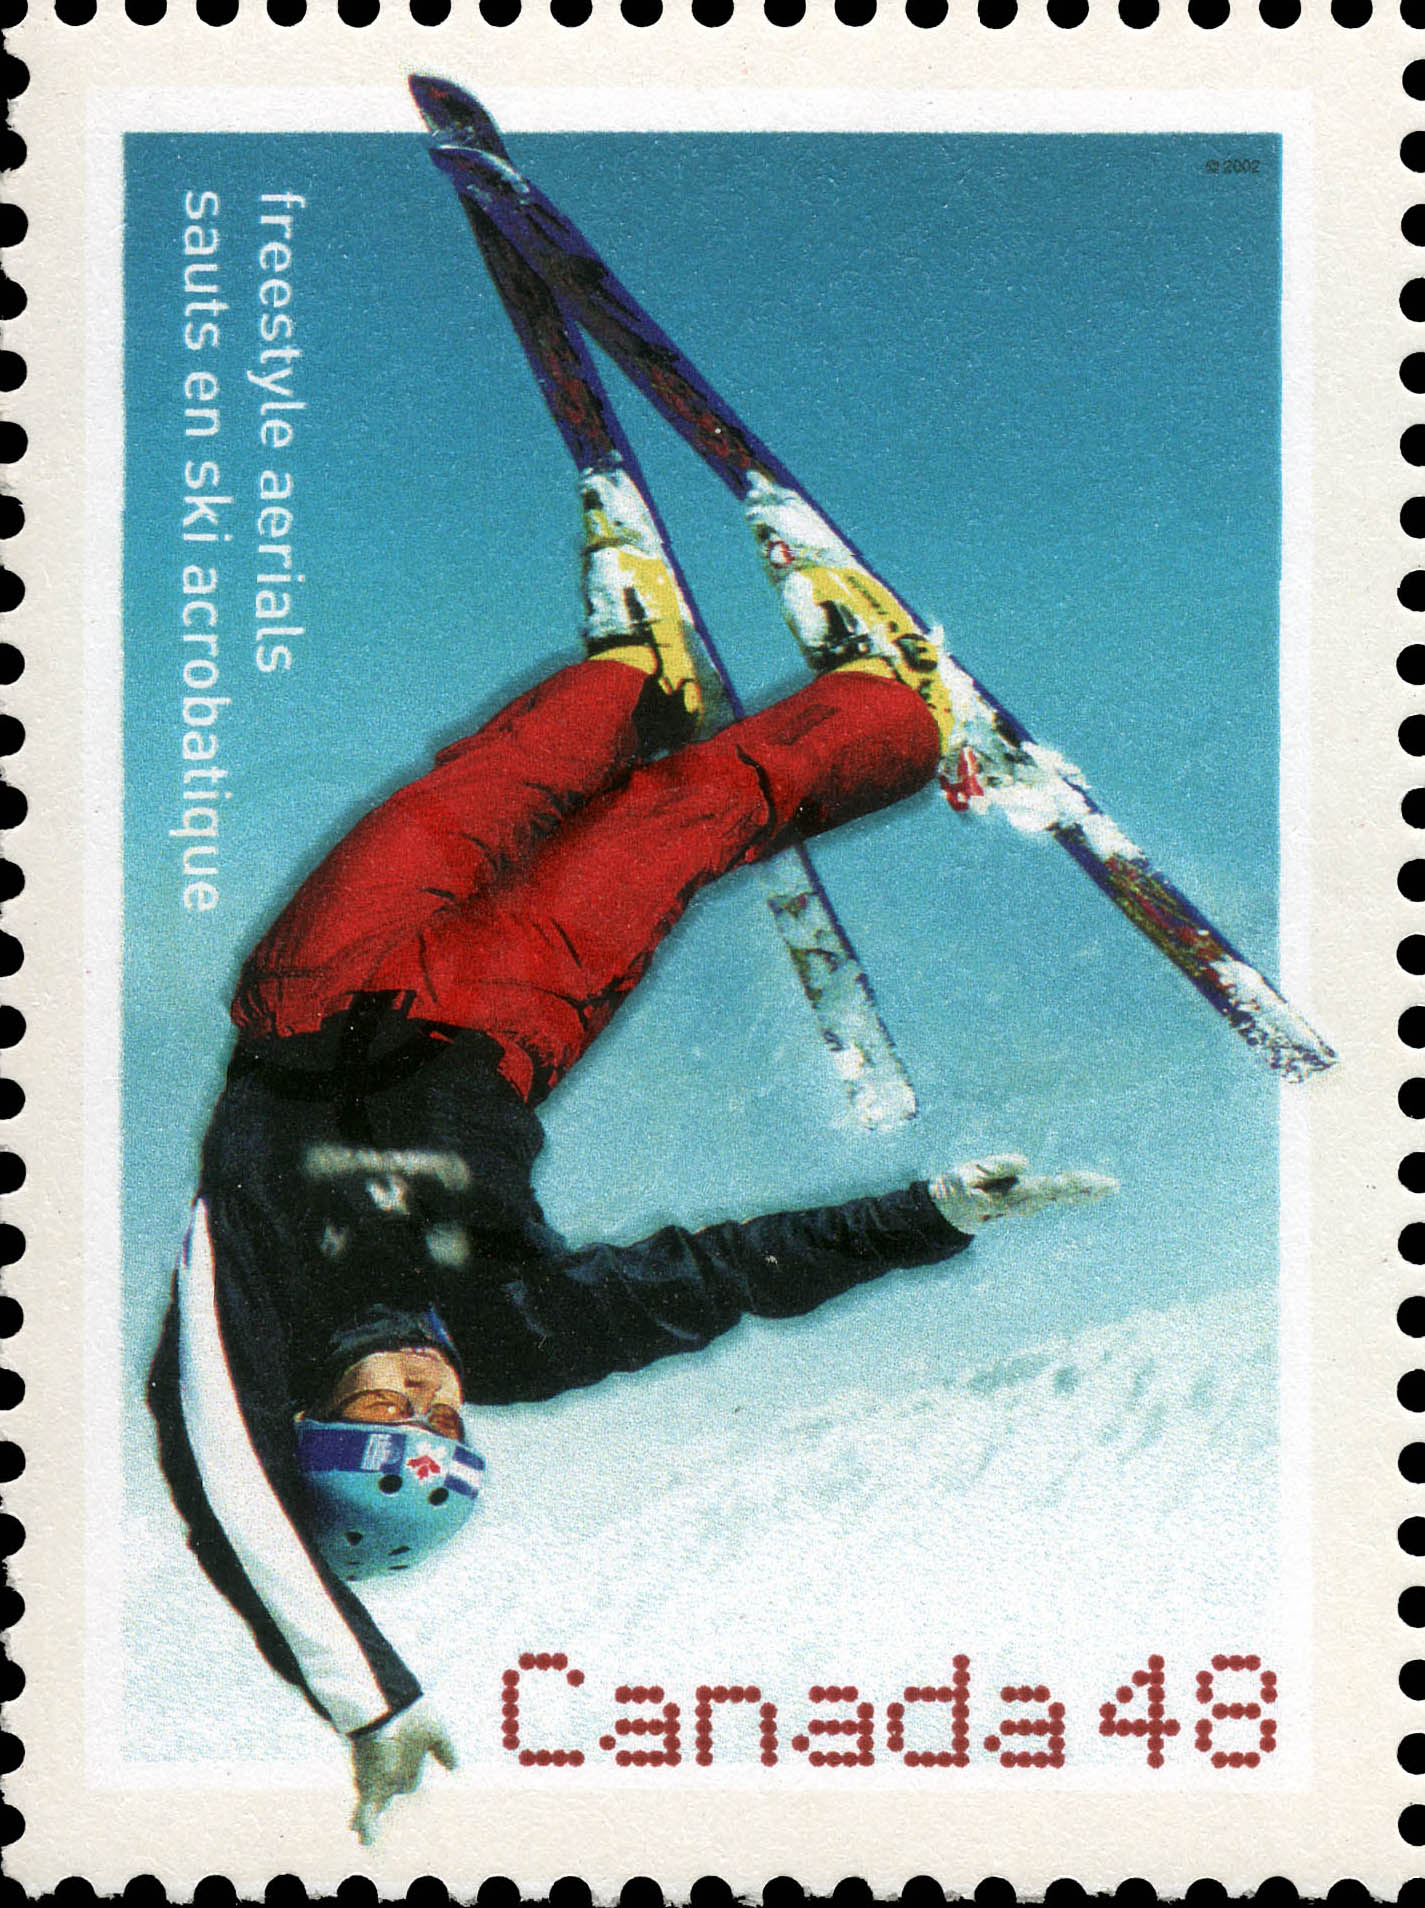 Freestyle Aerials Canada Postage Stamp